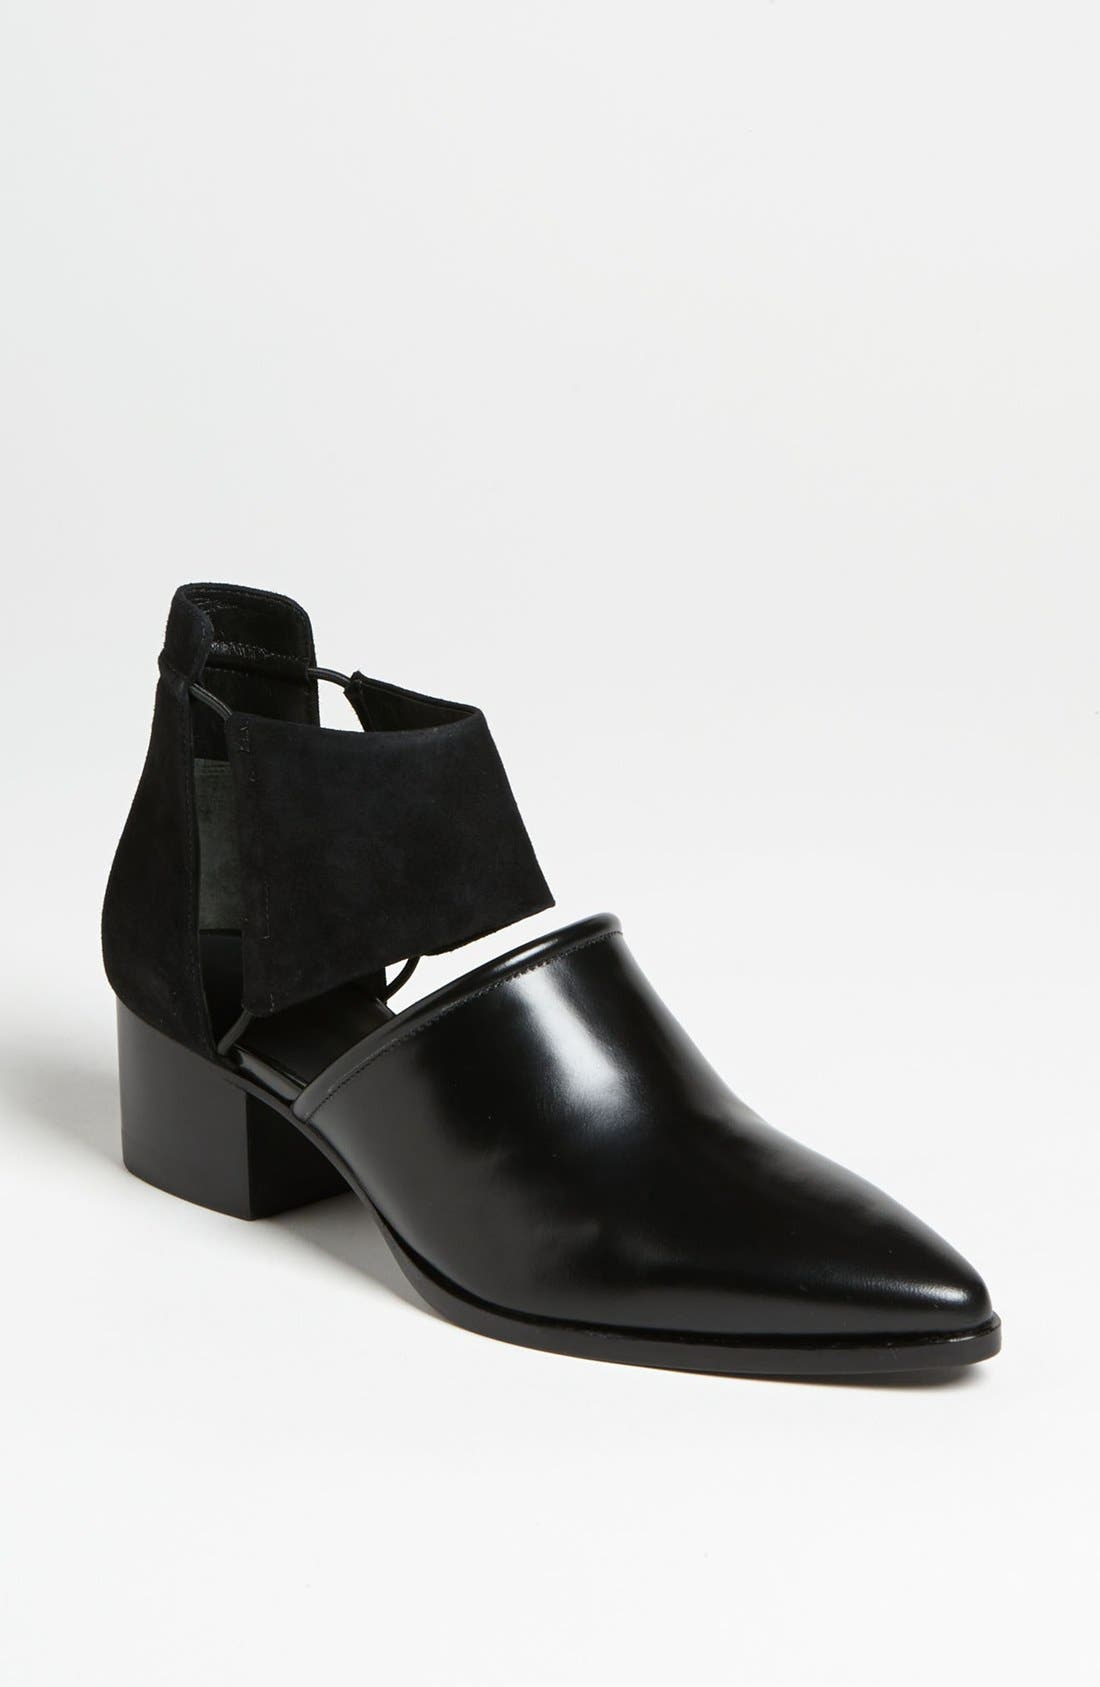 Alternate Image 1 Selected - Alexander Wang 'Nadine' Ankle Boot